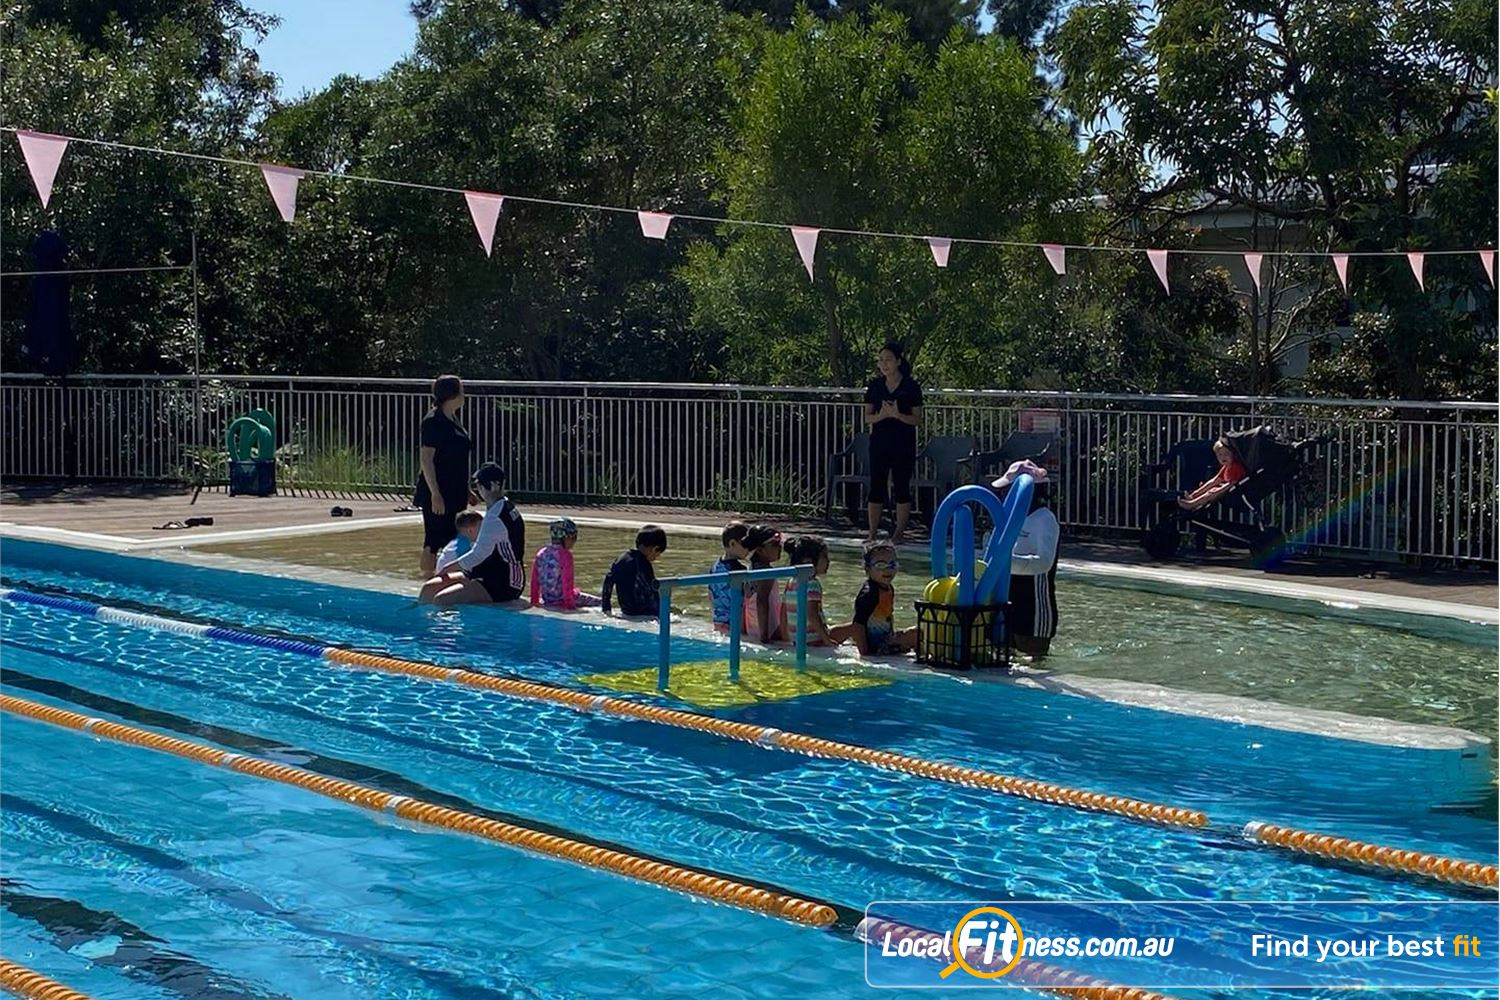 North Ryde Fitness & Aquatic Near Meadowbank Learn to swim with North Ryde swim school classes.